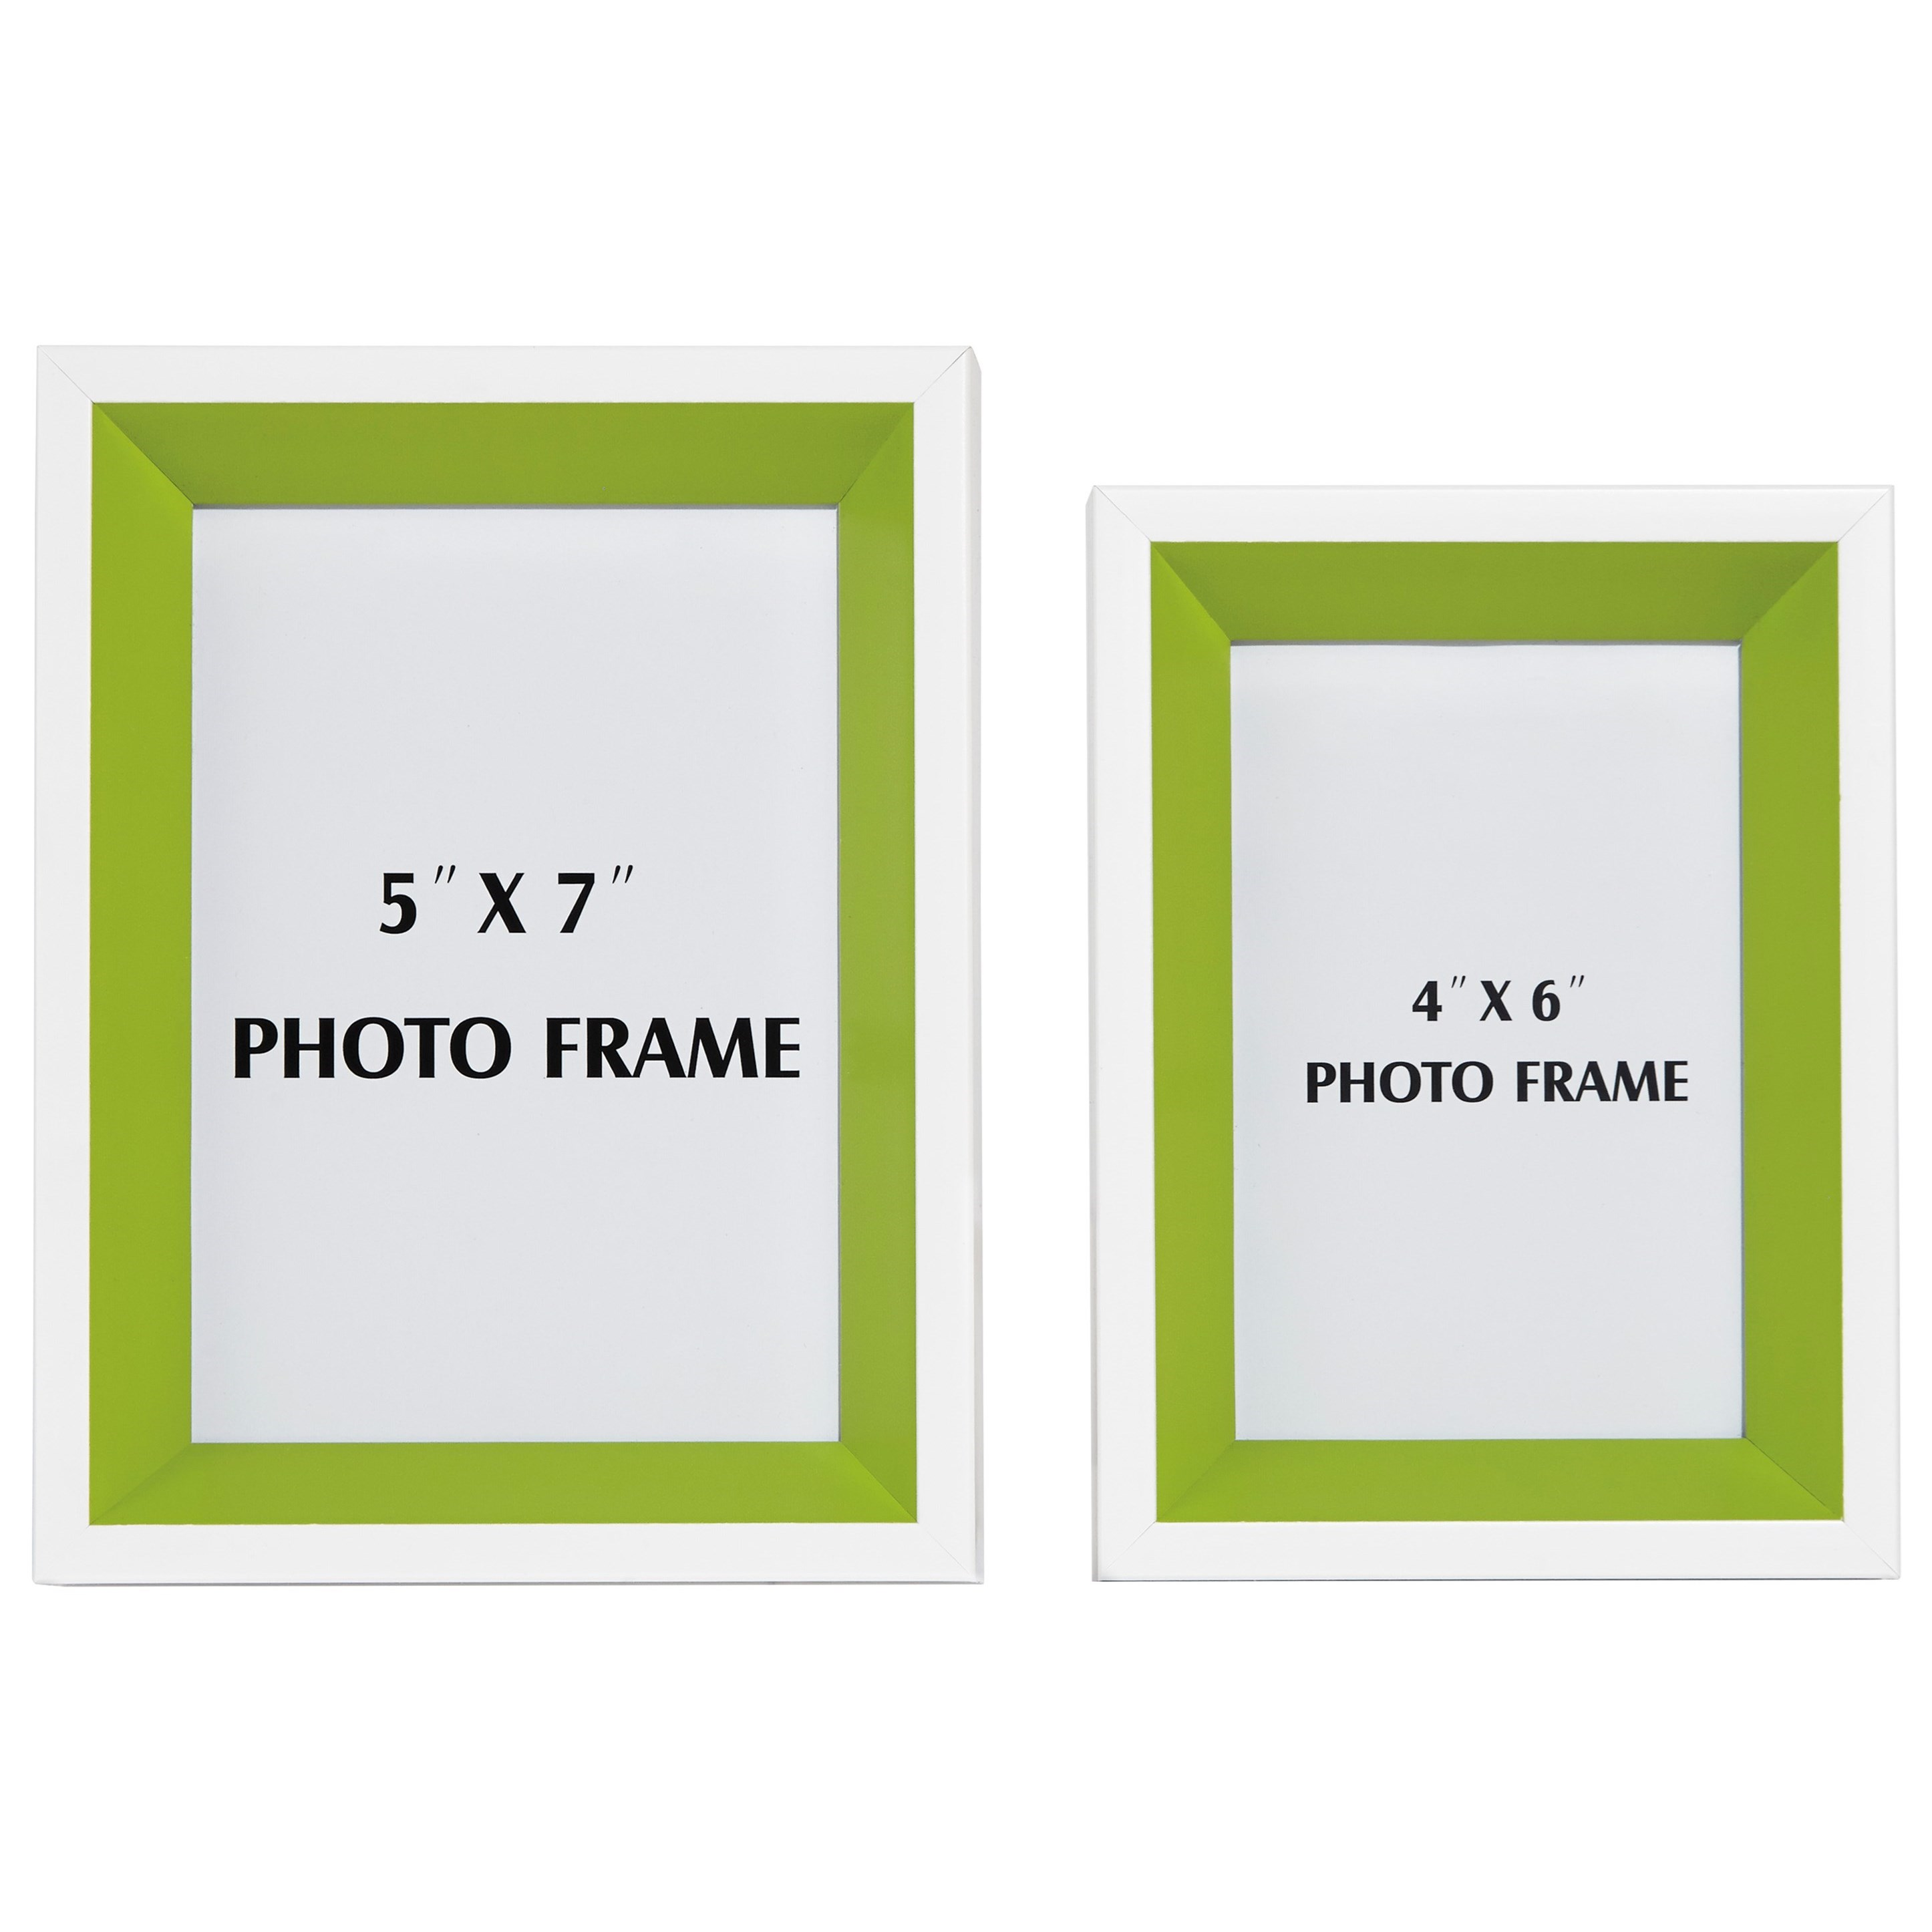 Signature Design by Ashley Accents Obie White/Green Photo Frame (Set of 2) - Item Number: A2080003F